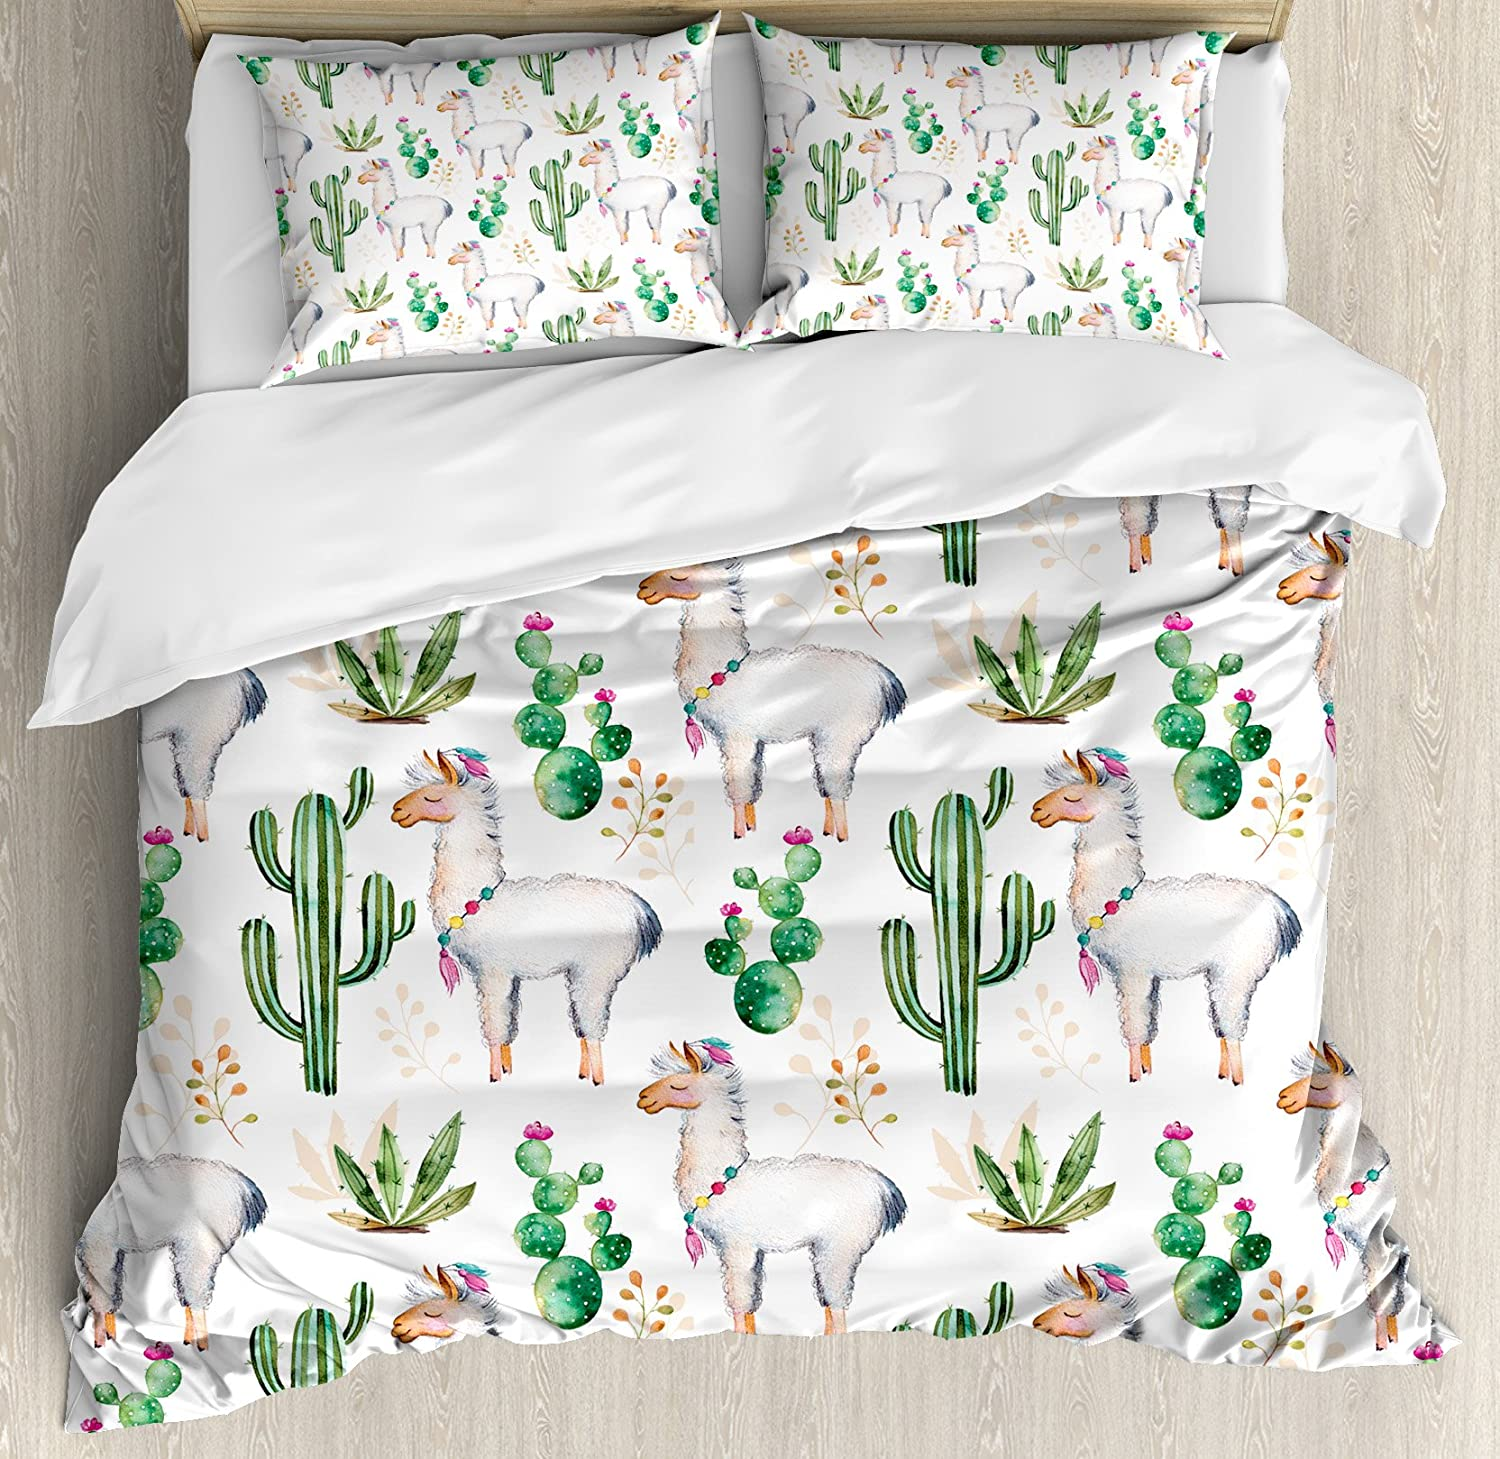 Ambesonne Cactus Duvet Cover Set King Size, Hot South Desert Plant Cactus Pattern with Camel Animal Modern colord Theme Image Print, A Decorative 3 Piece Bedding Set with 2 Pillow Shams, Multicolor